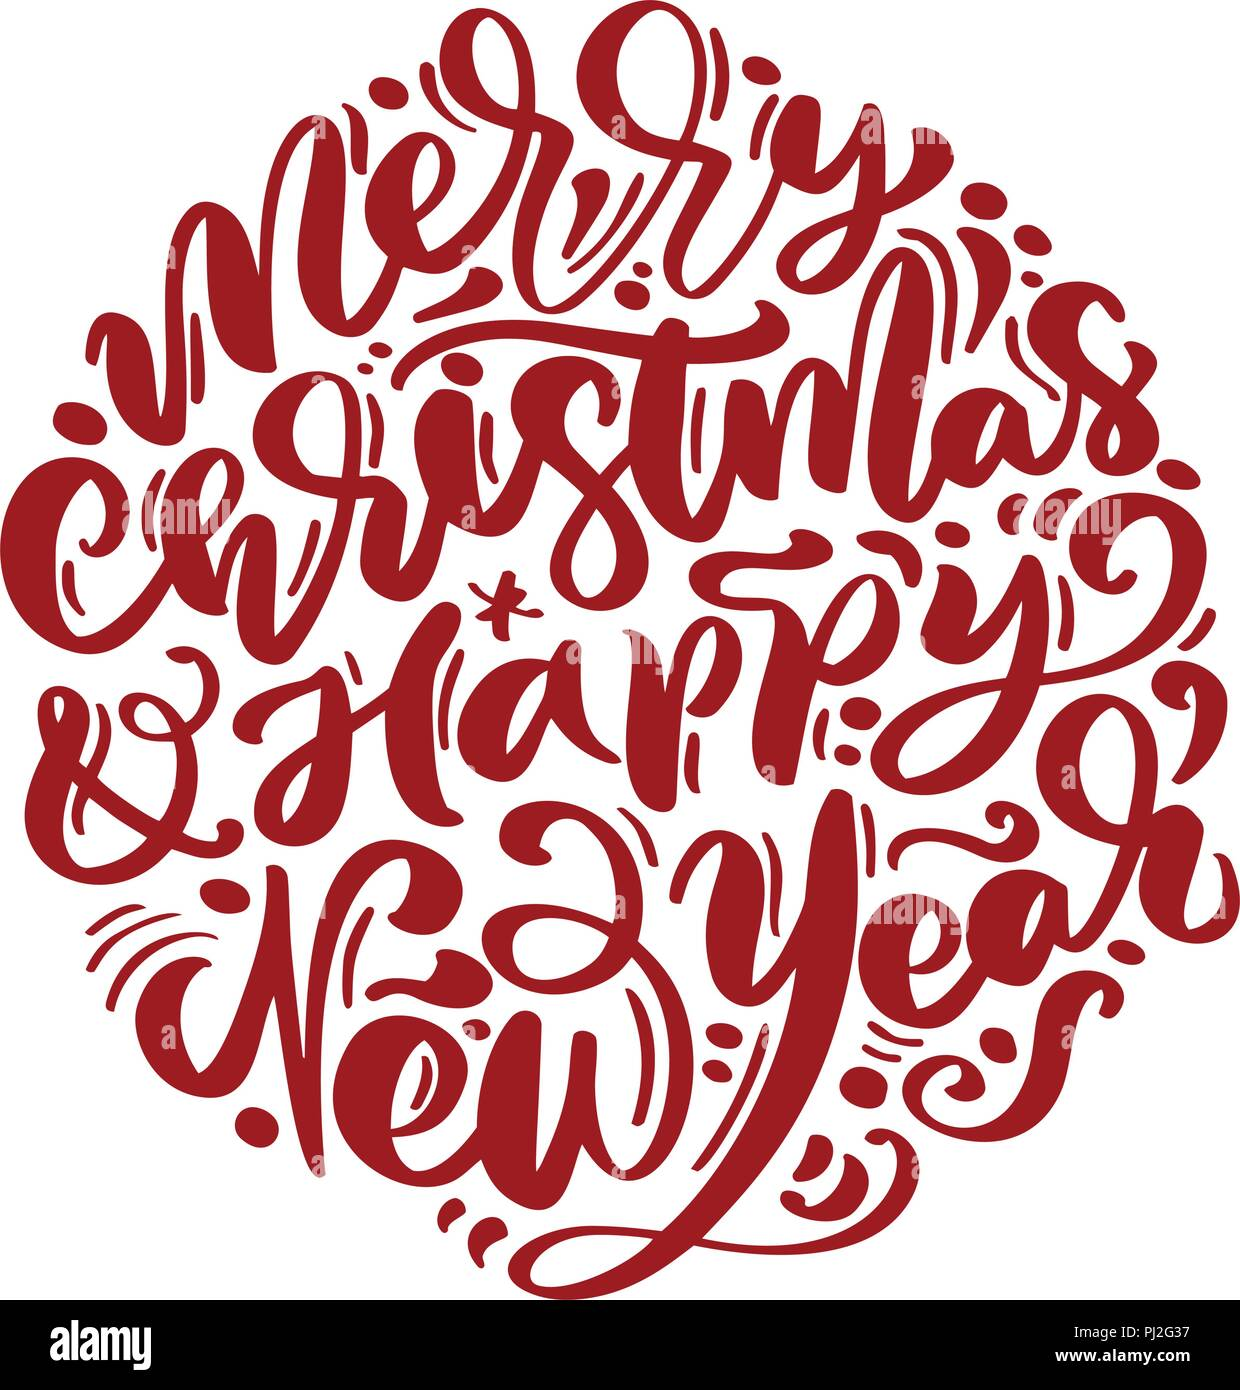 merry christmas and happy new year vector text calligraphic lettering design card template creative typography for holiday greeting gift poster